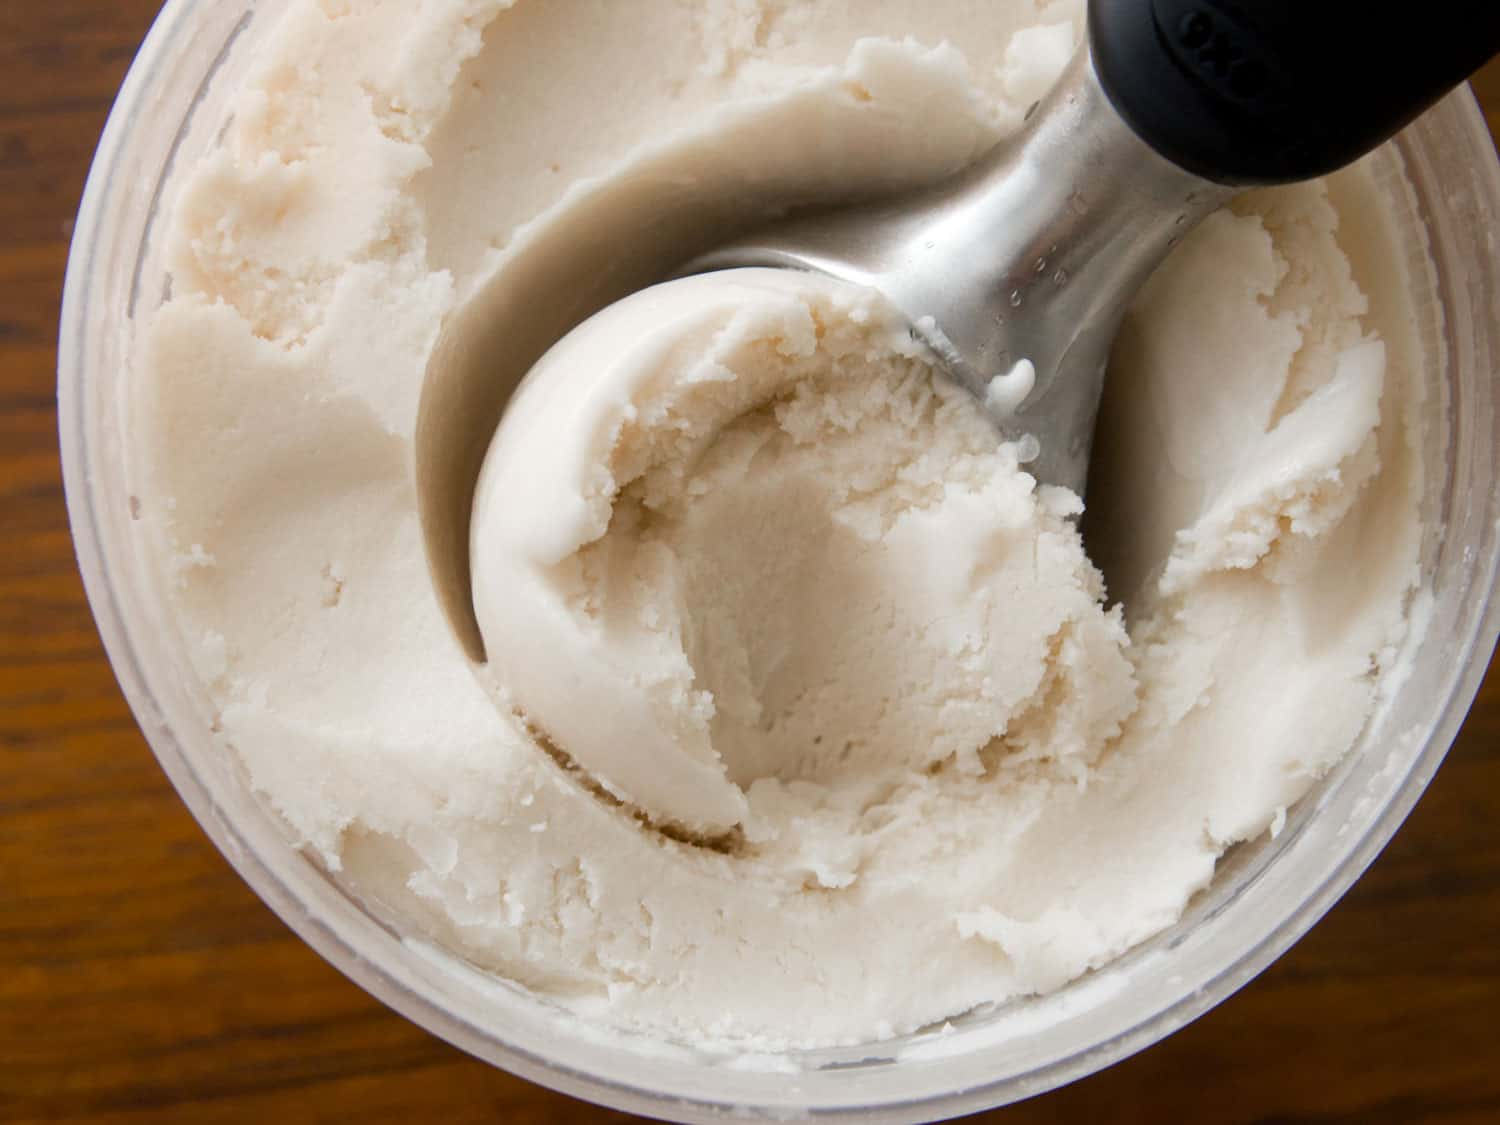 Vegan vanilla coconut ice cream